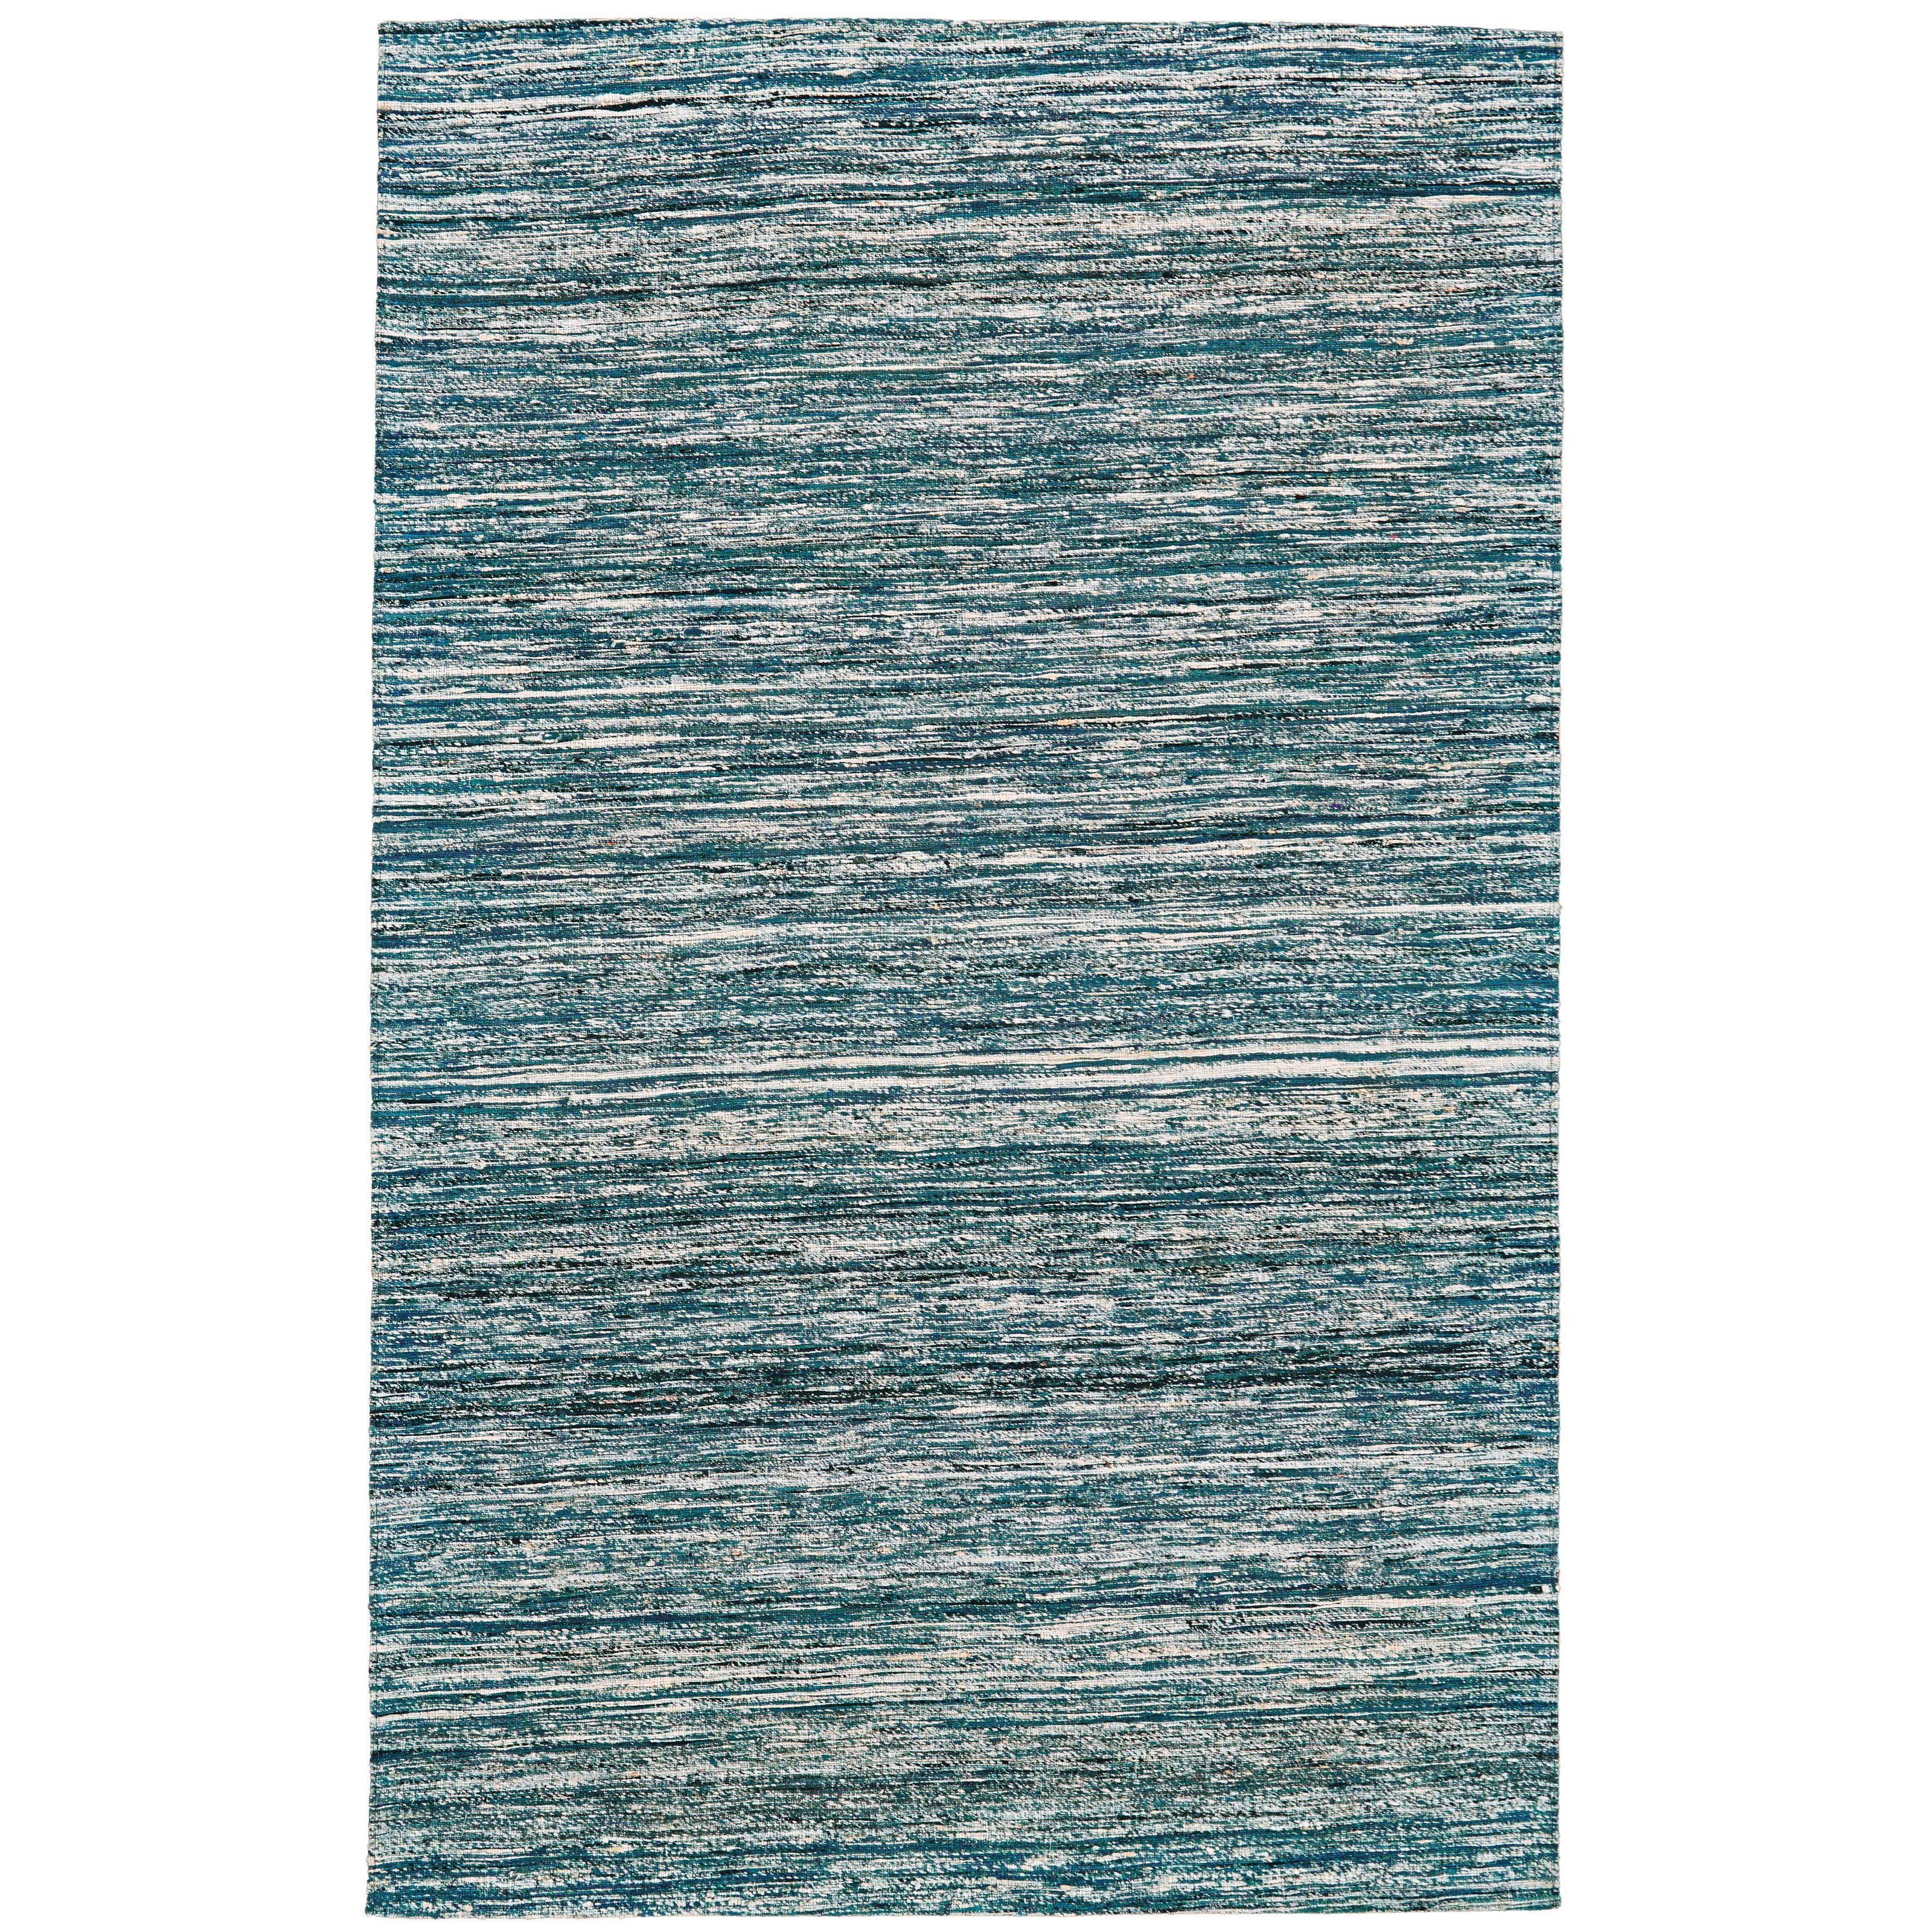 "Arushi Gray 3'-6"" x 5'-6"" Area Rug by Feizy Rugs at Sprintz Furniture"